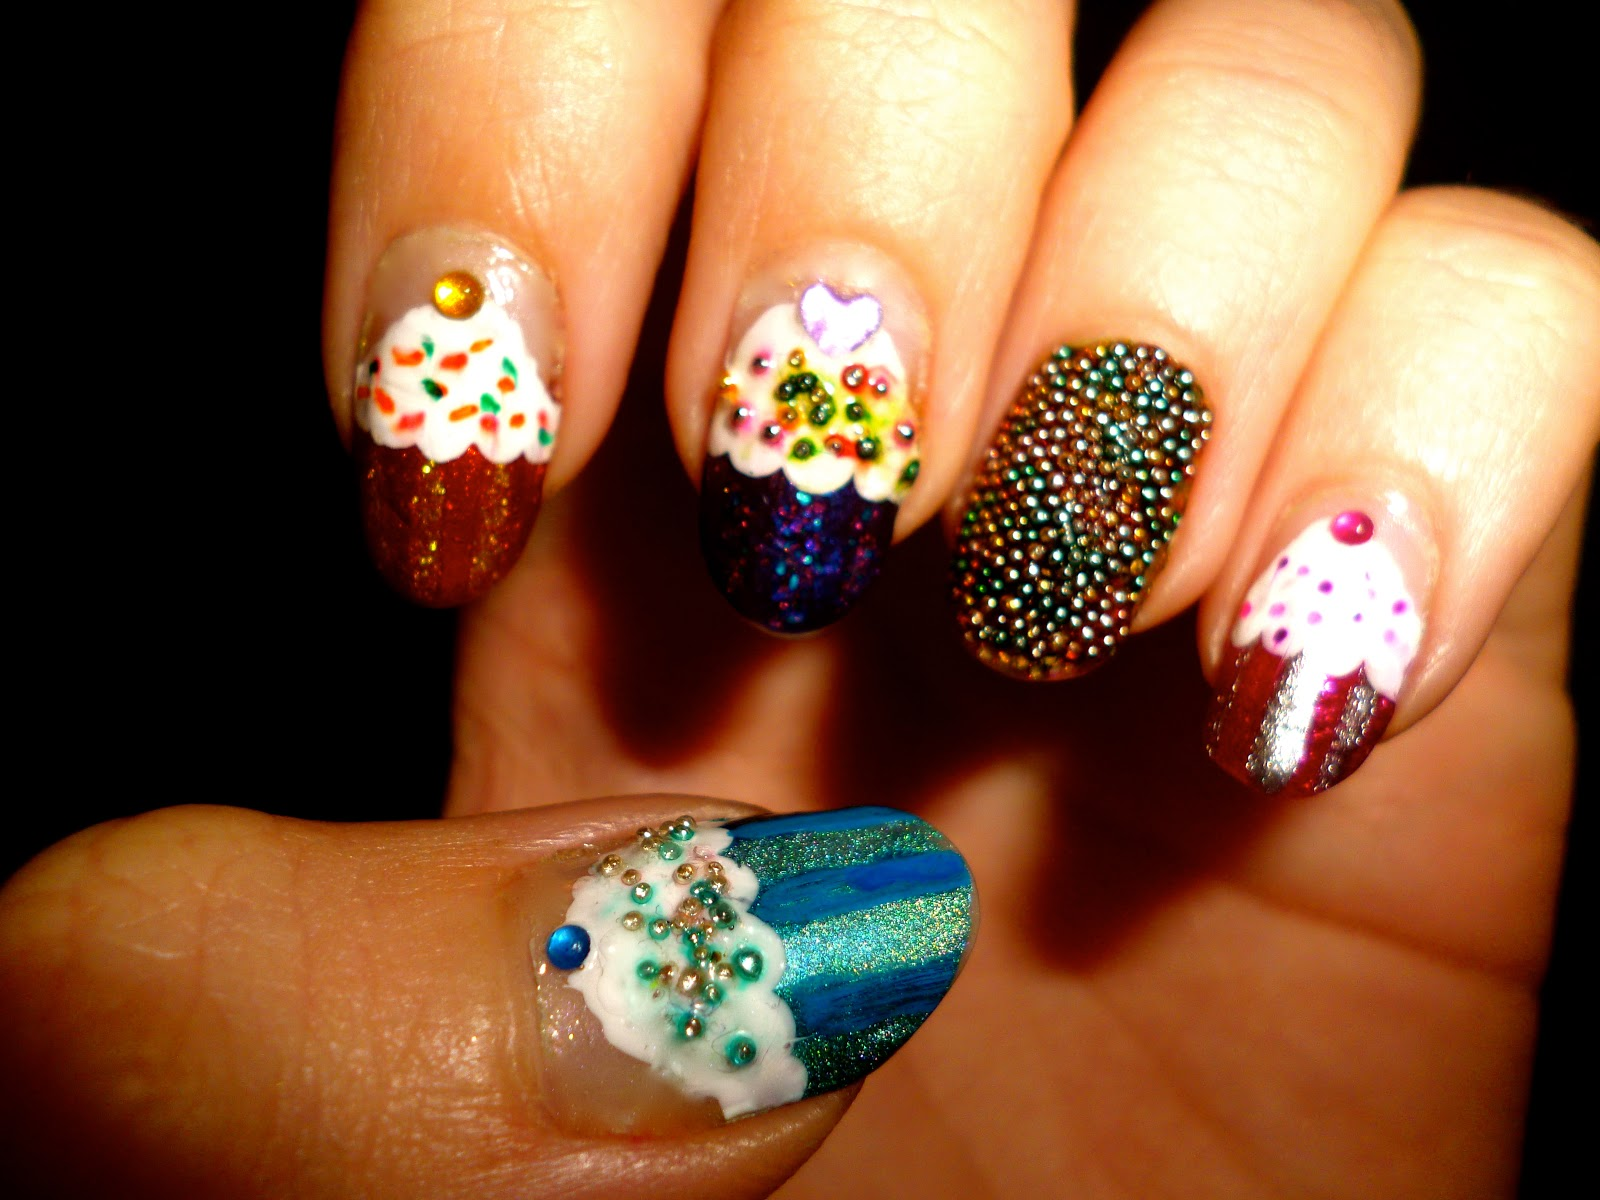 Science, Engineering and Nail Art: Cupcakes and sprinkles ^_^